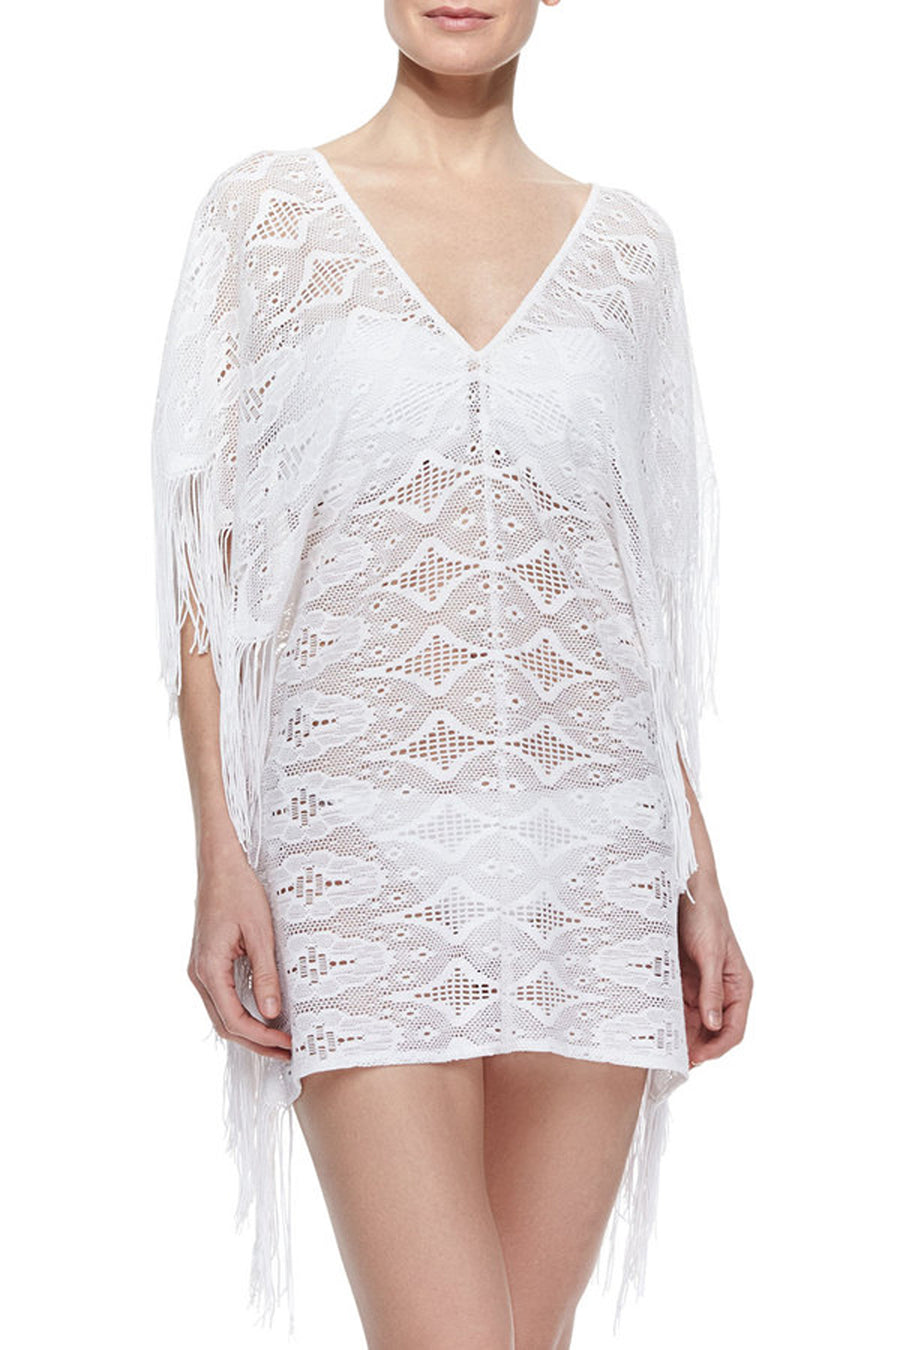 Taylor White Lace Coverup - SAMPLE